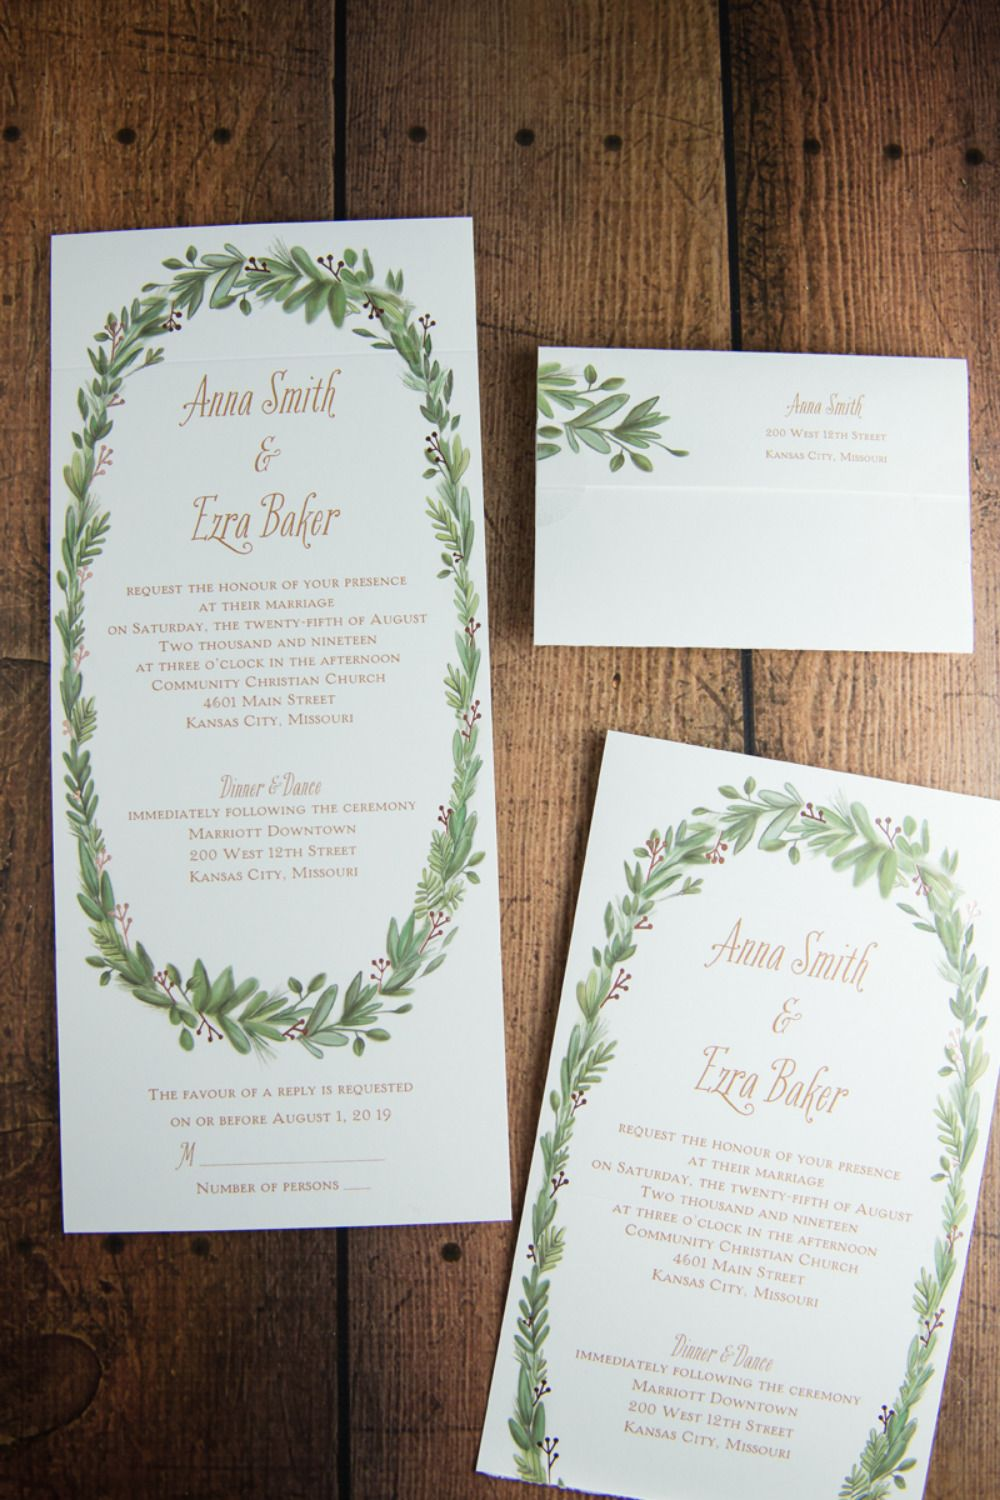 Wedding Invitations & Cakes For Cold Weather Weddings | Rsvp ...